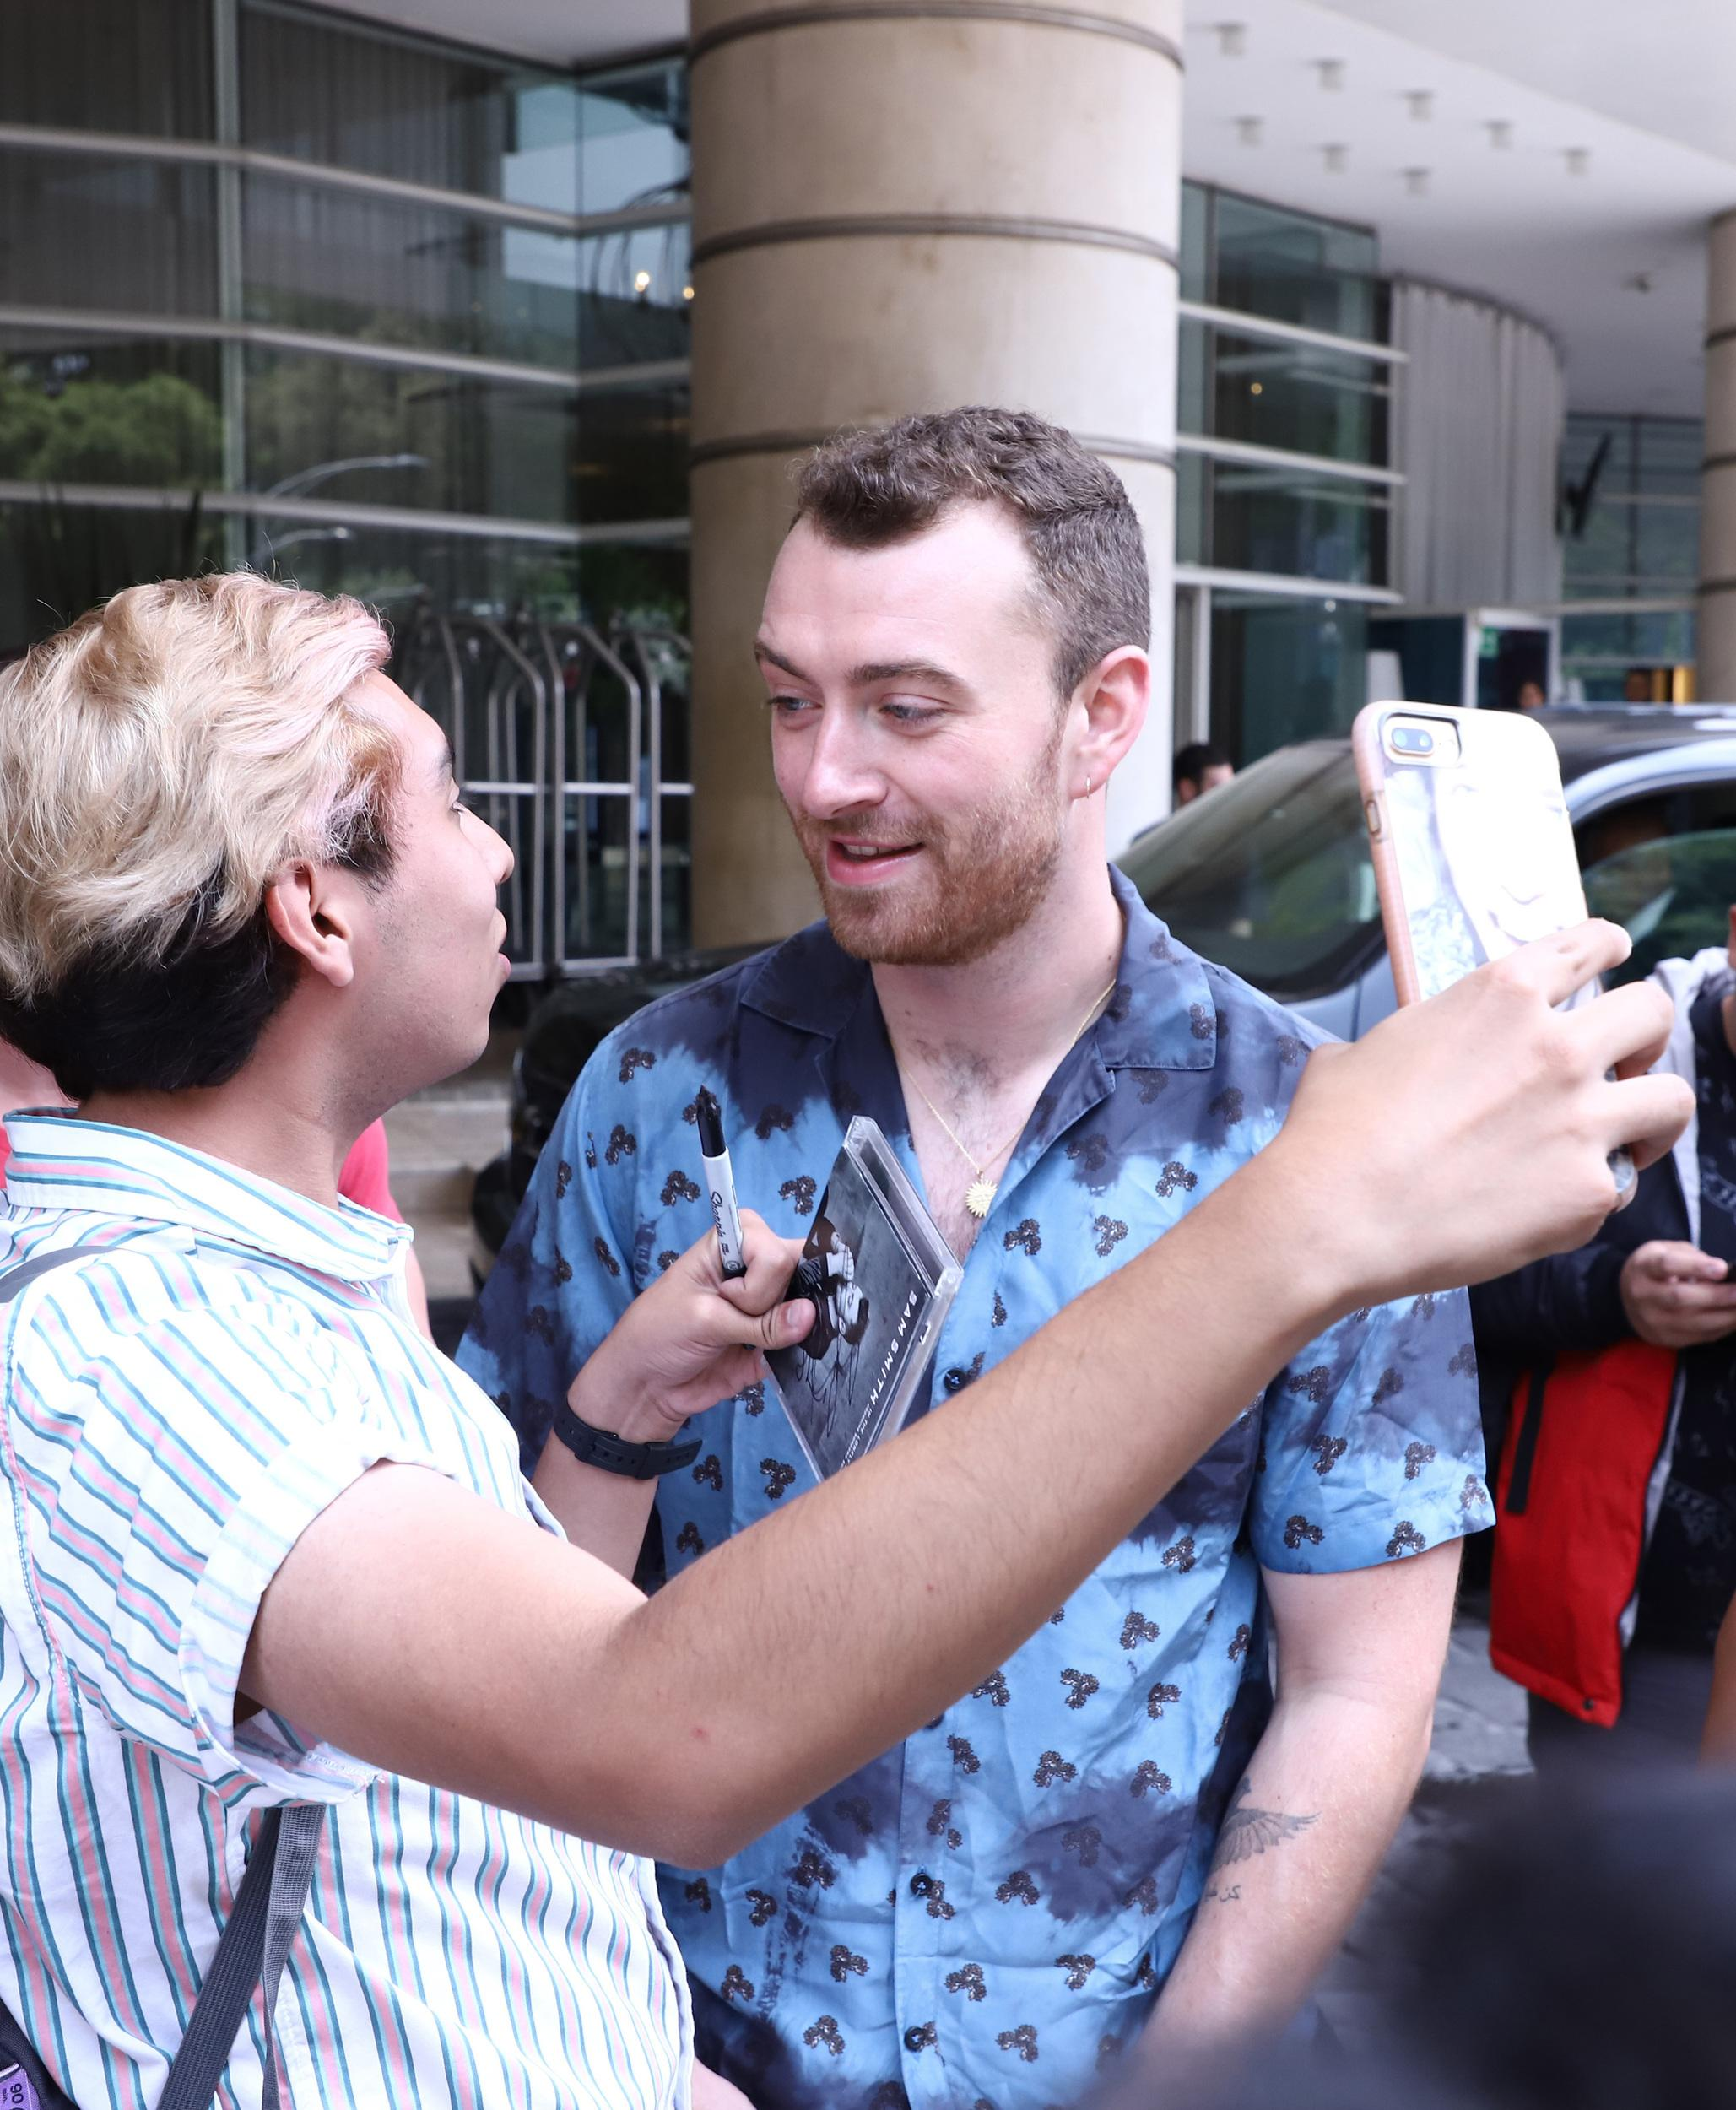 Sam Smith sighting with Fans in Mexico City, Mexico on July 26, 2018. (Photos by Liliana Ampudia Mendez/Sipa USA)